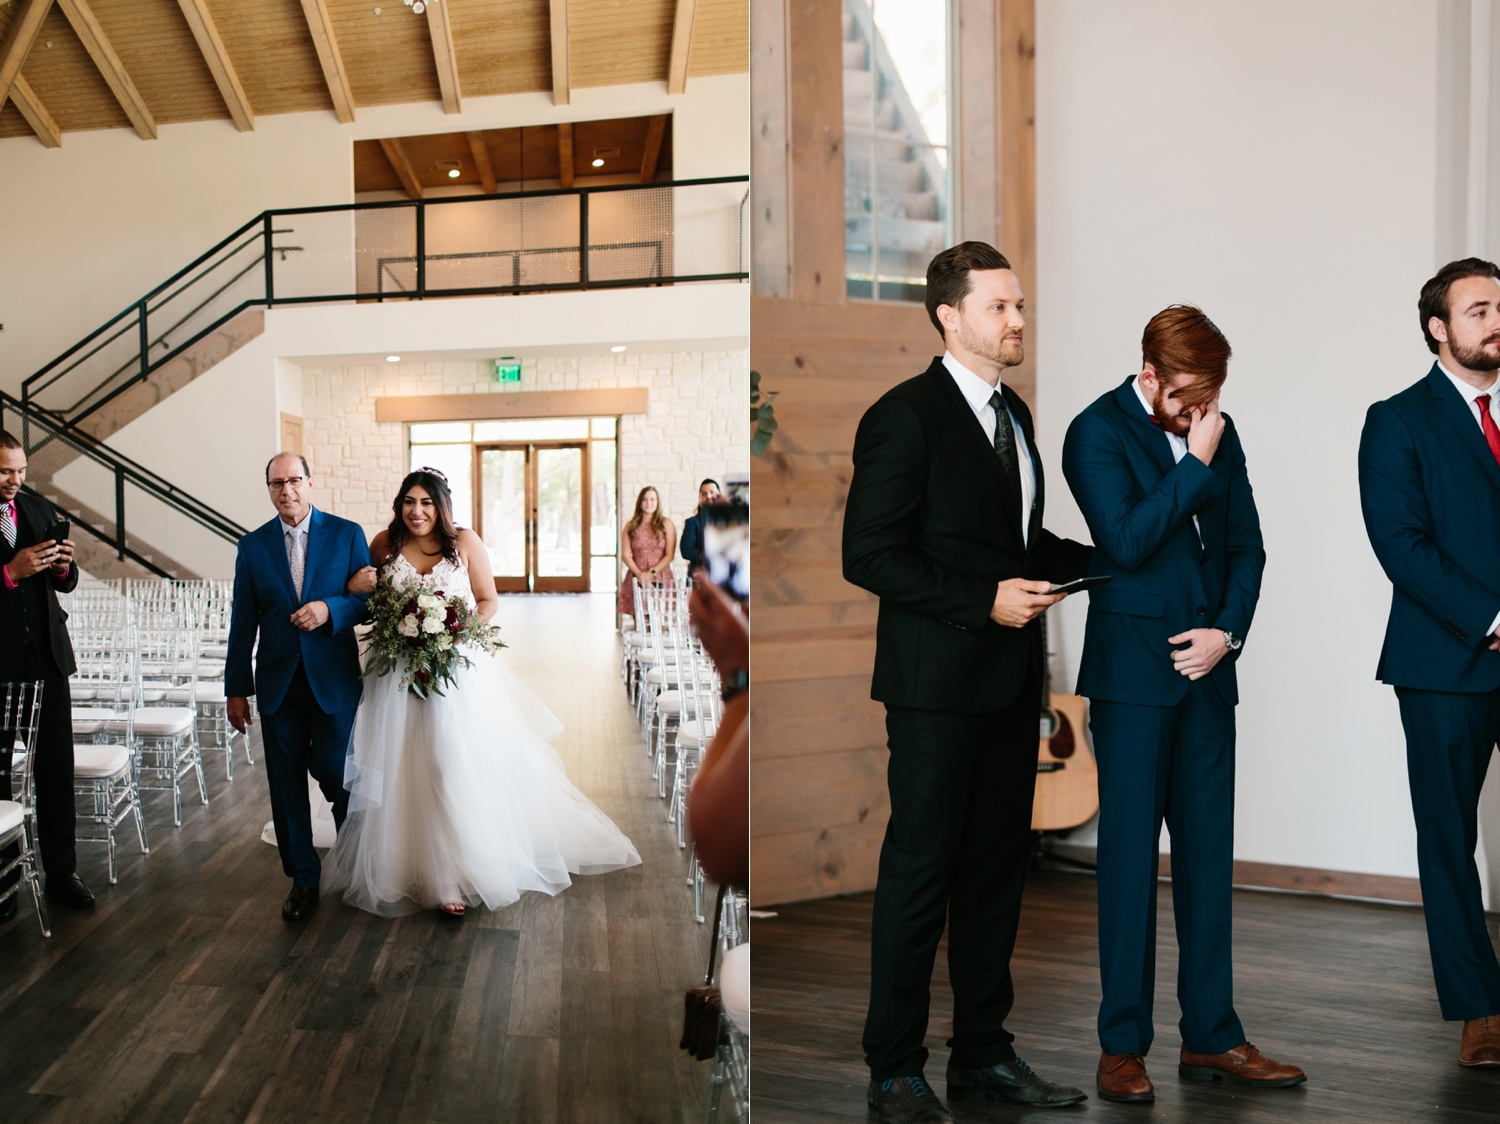 Grant + Lysette | a vibrant, deep burgundy and navy, and mixed metals wedding at Hidden Pines Chapel by North Texas Wedding Photographer Rachel Meagan Photography 061